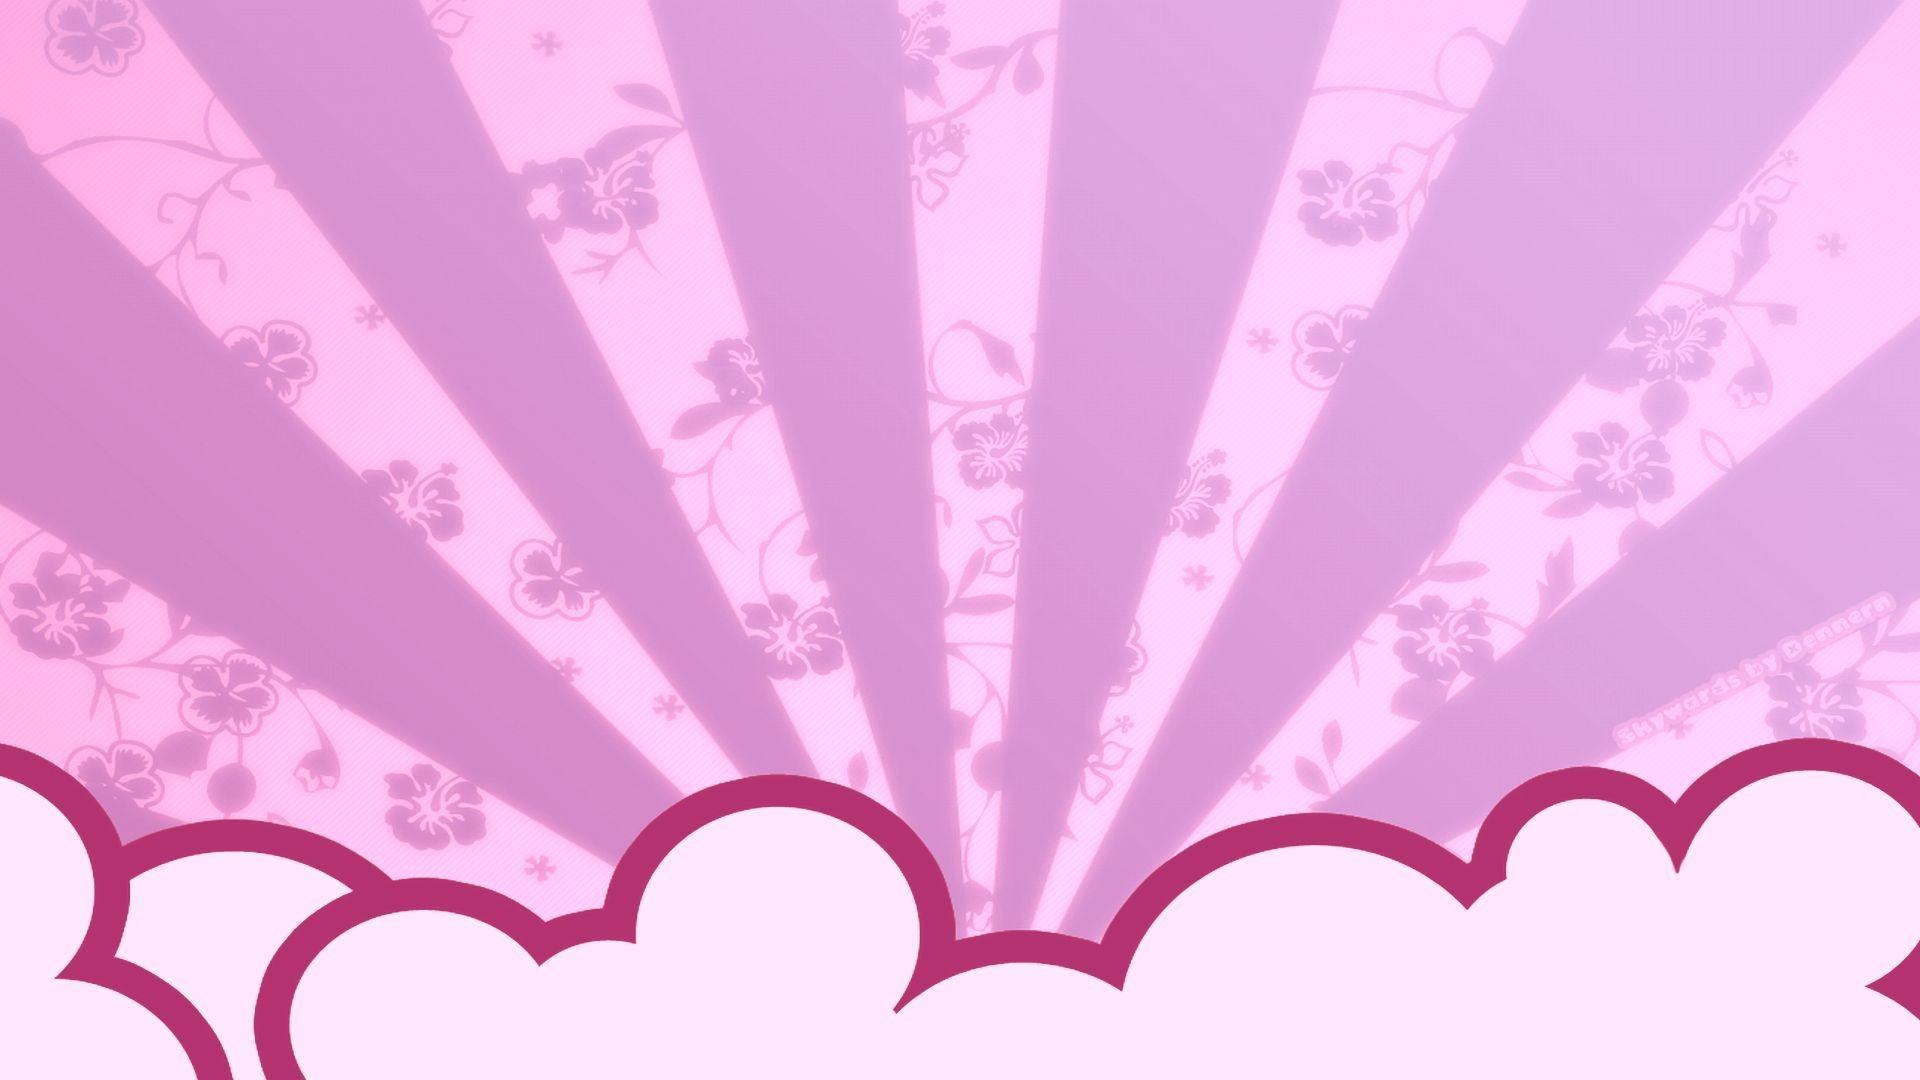 Res: 1920x1080, Low Poly Light Pink Wallpaper Background Freevectors